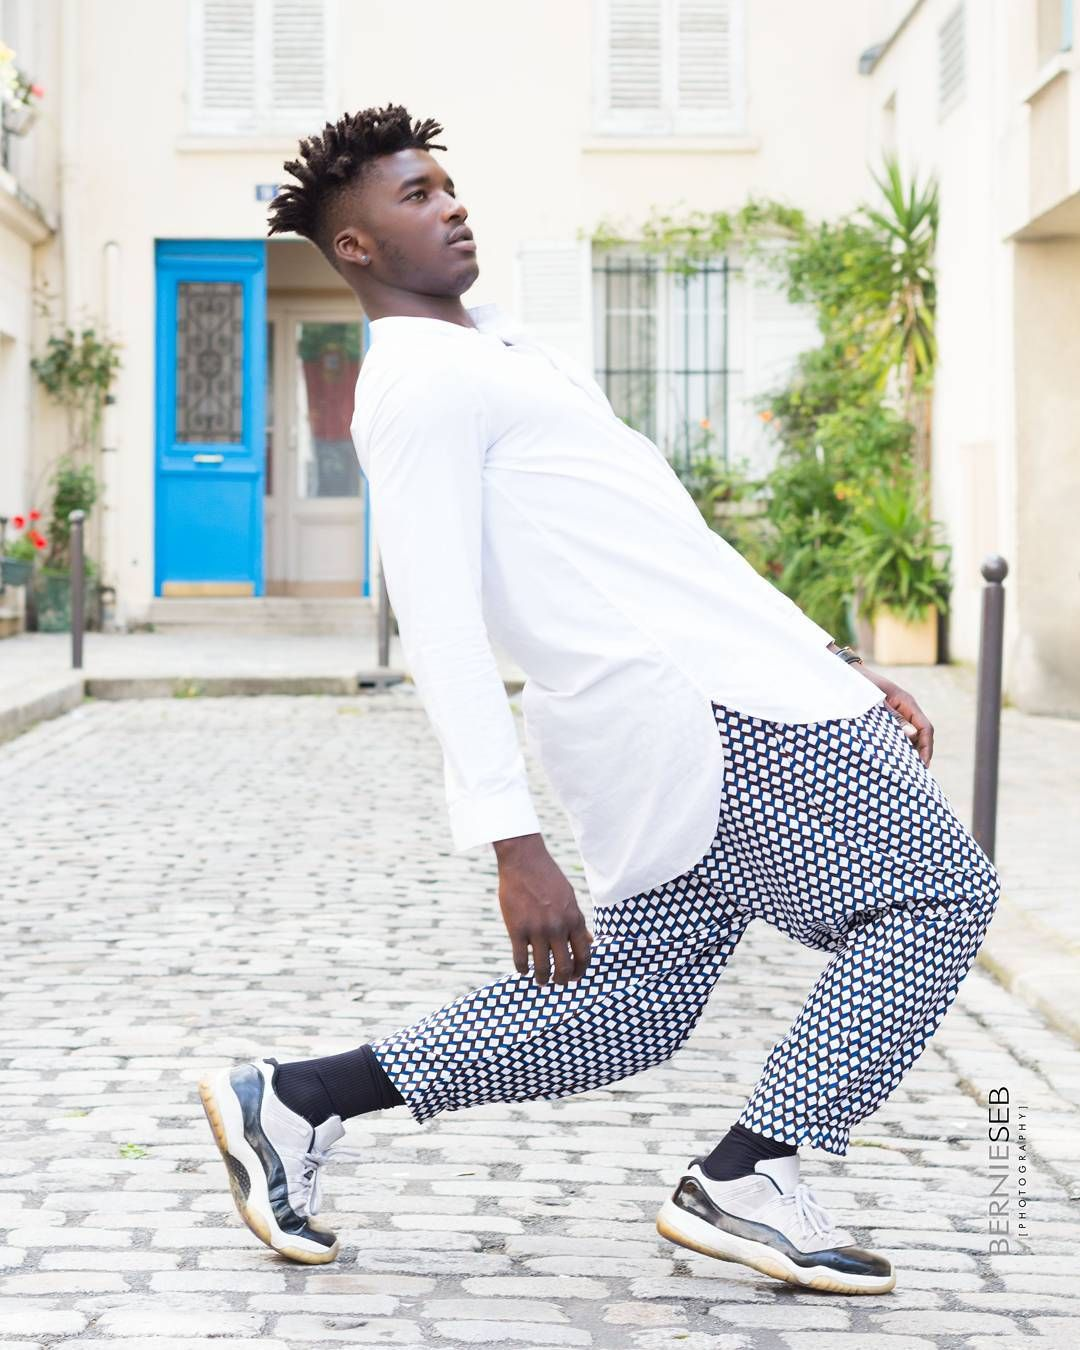 #Mood : #friday attitude!  @ibra5idibe is ready for the weekend in a sporty casual look with our ss17 pants  #delasebure #jordan #js #africanfashion #paris